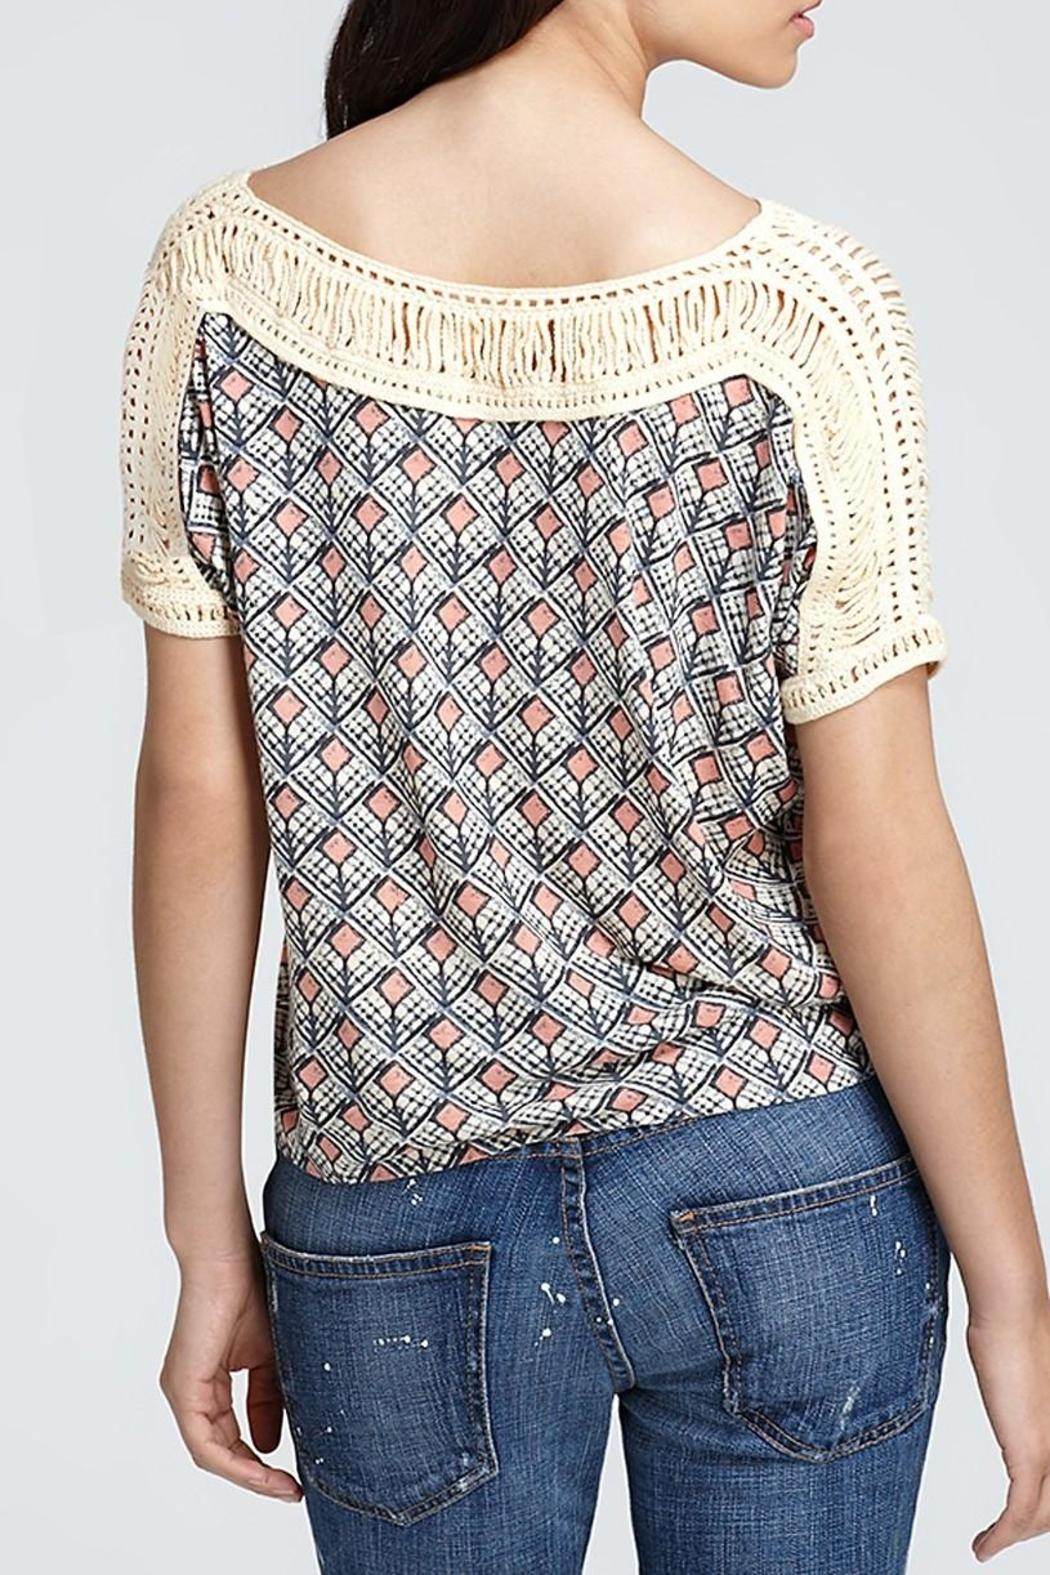 Free People Tribal Grunge Top - Front Full Image